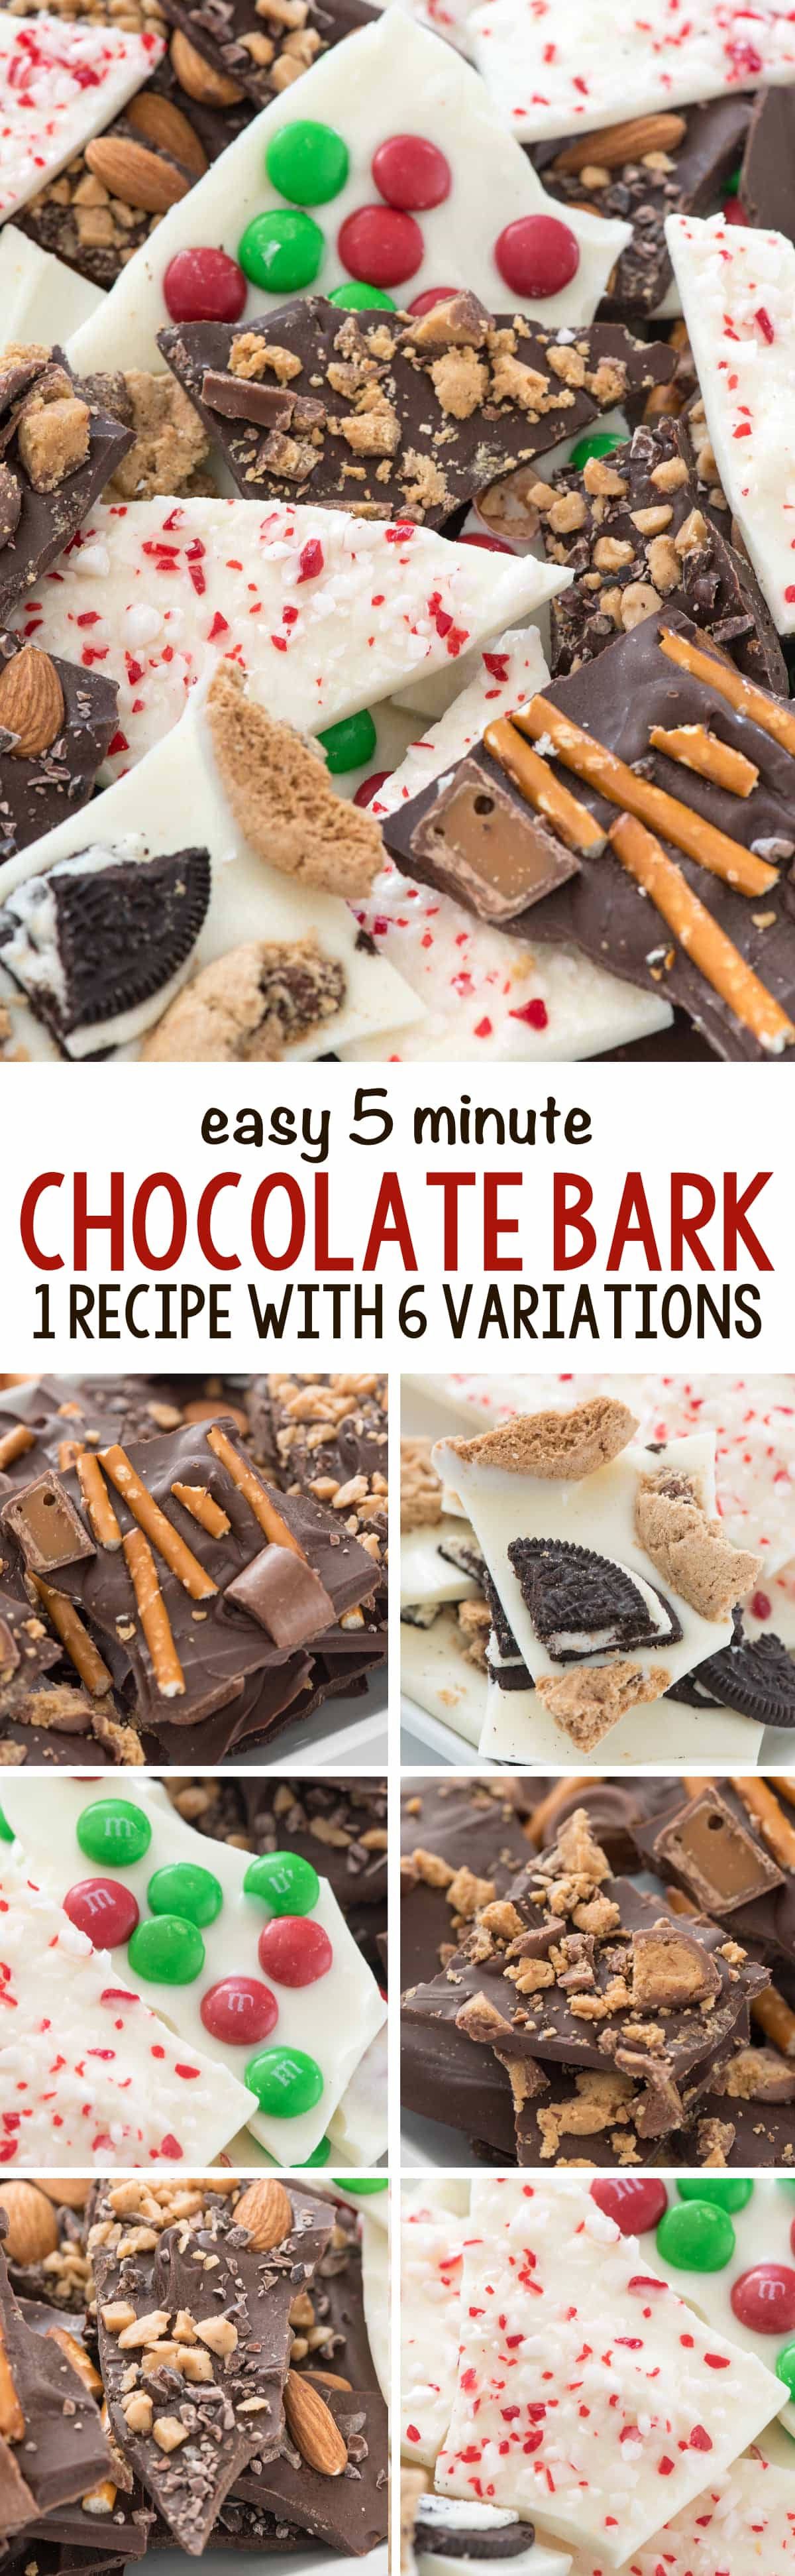 5 Minute Chocolate Bark - this easy recipe shows you how to make bark over 6 ways using only 2 basic ingredients!